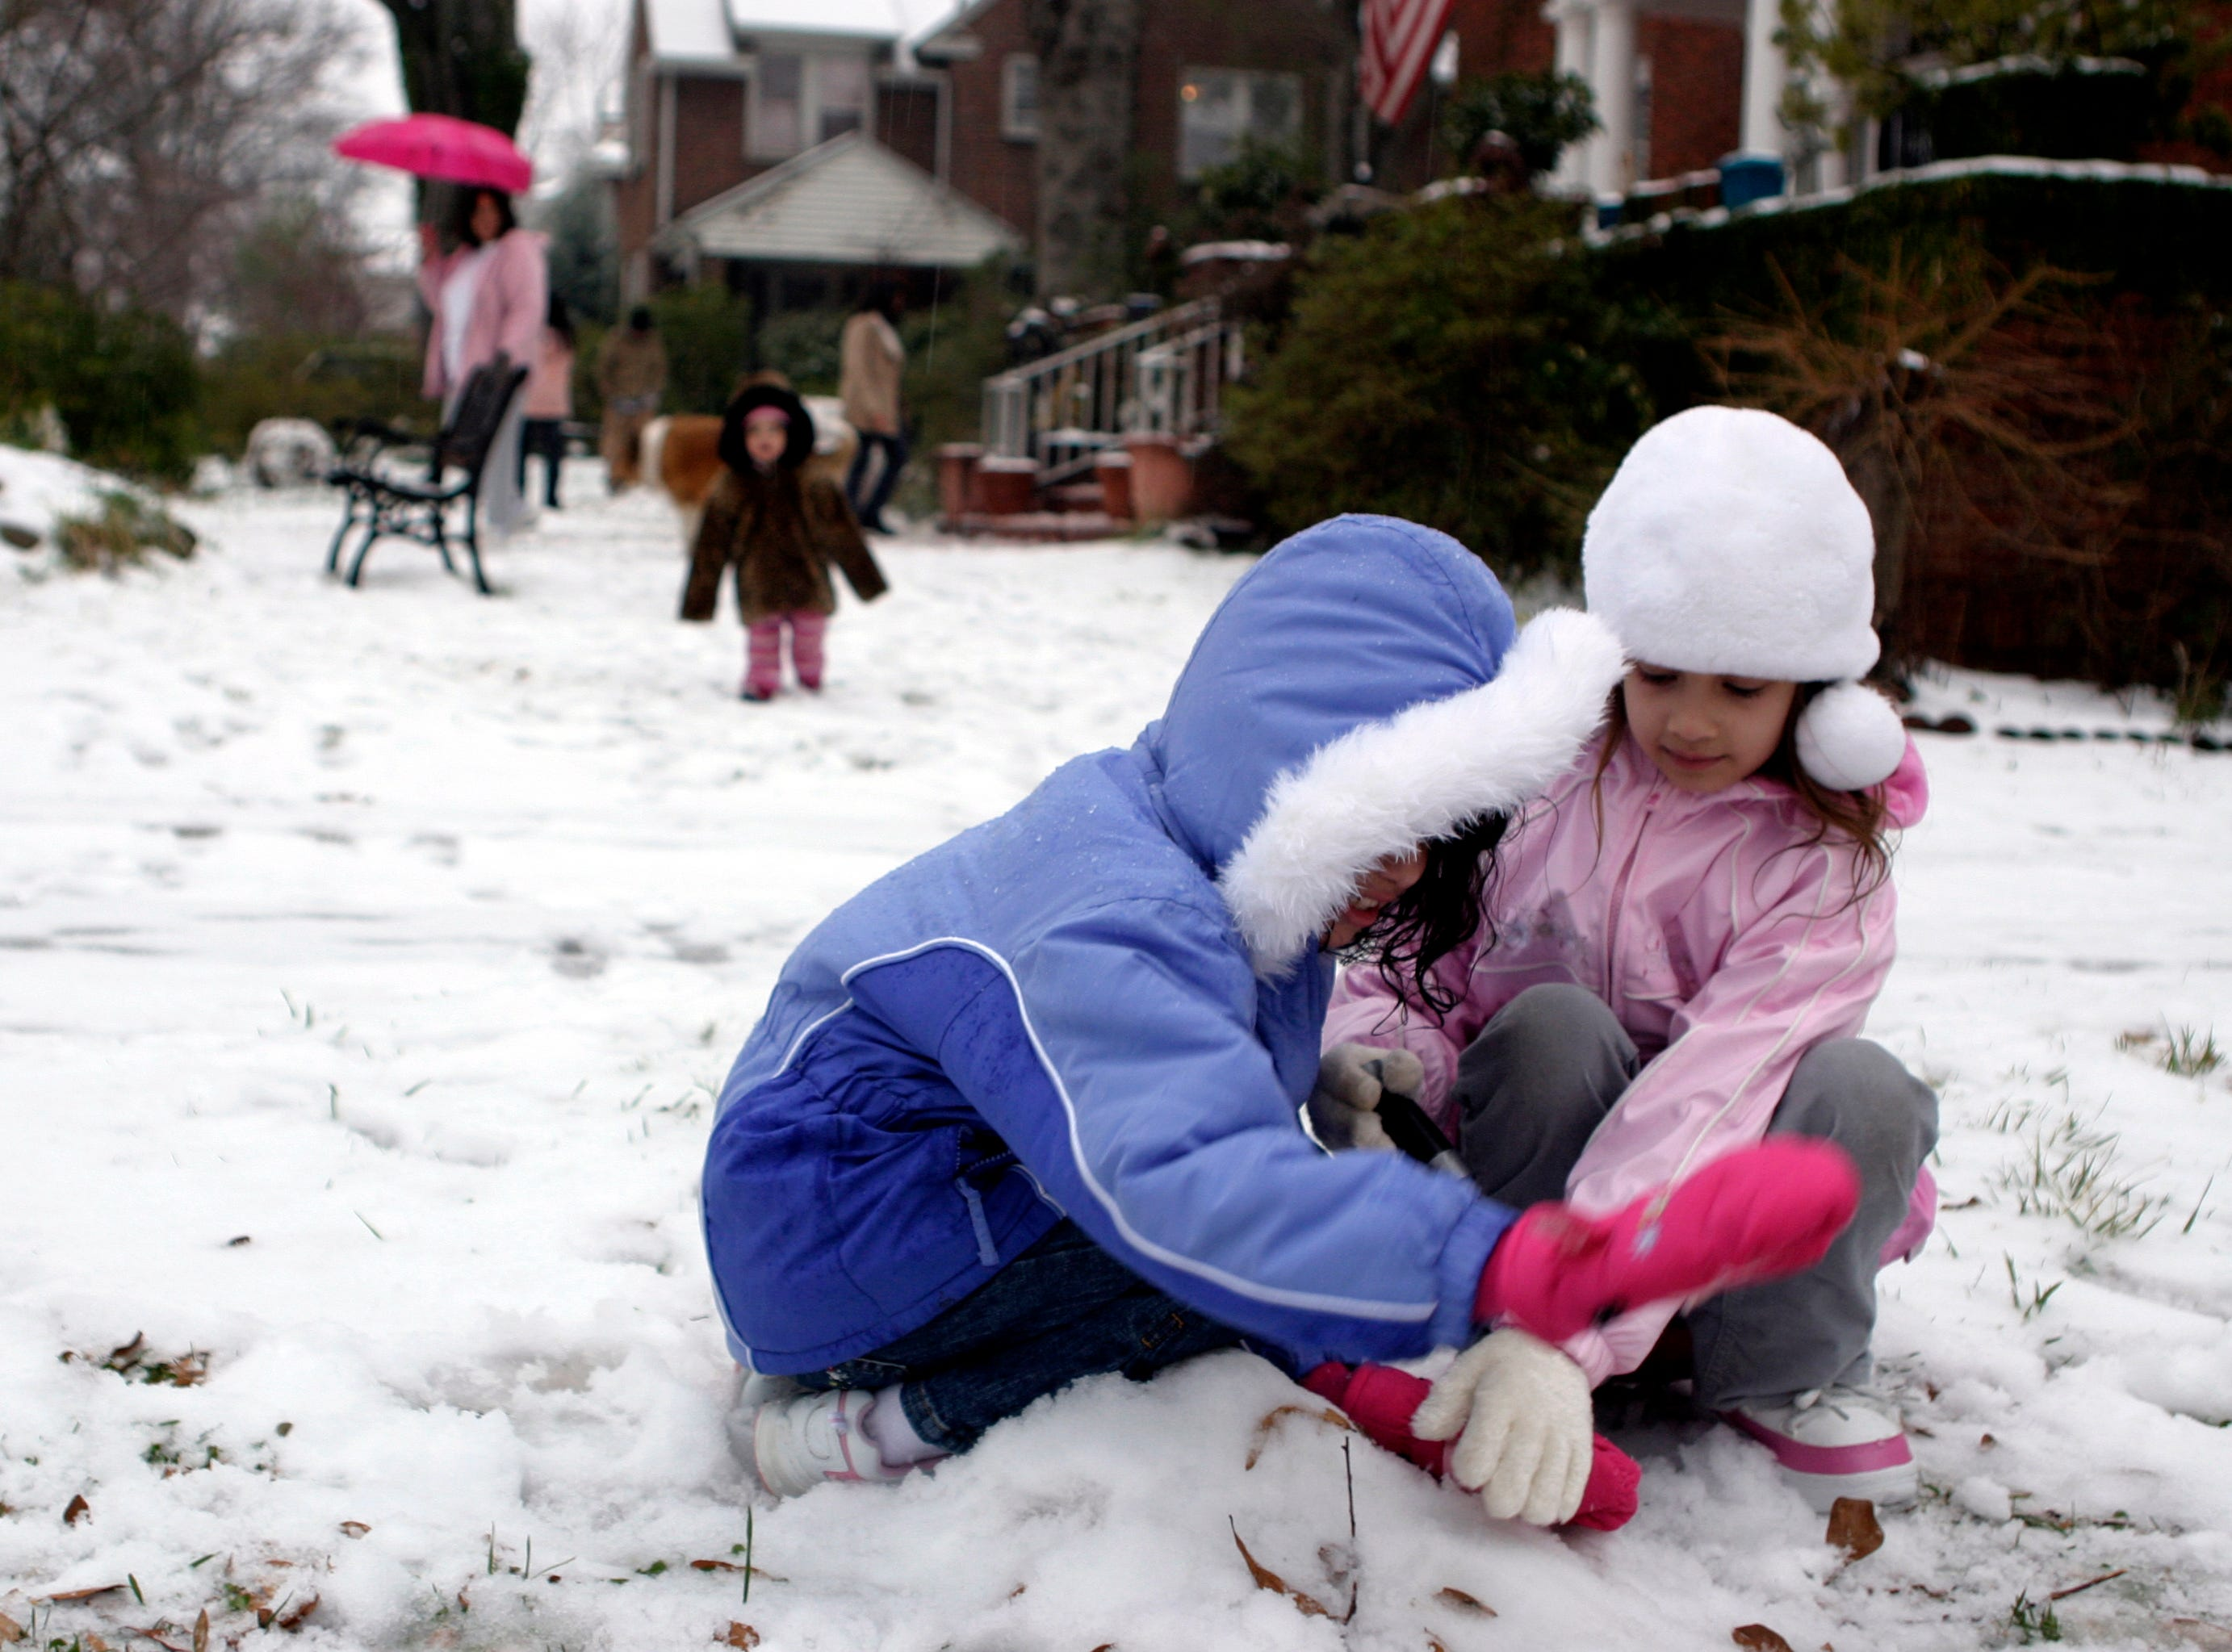 Children play in the snow on Earle Street in downtown Greenville Thursday morning, Feb. 1, after a snow storm covers the Upstate Thursday, February 1, 2007.